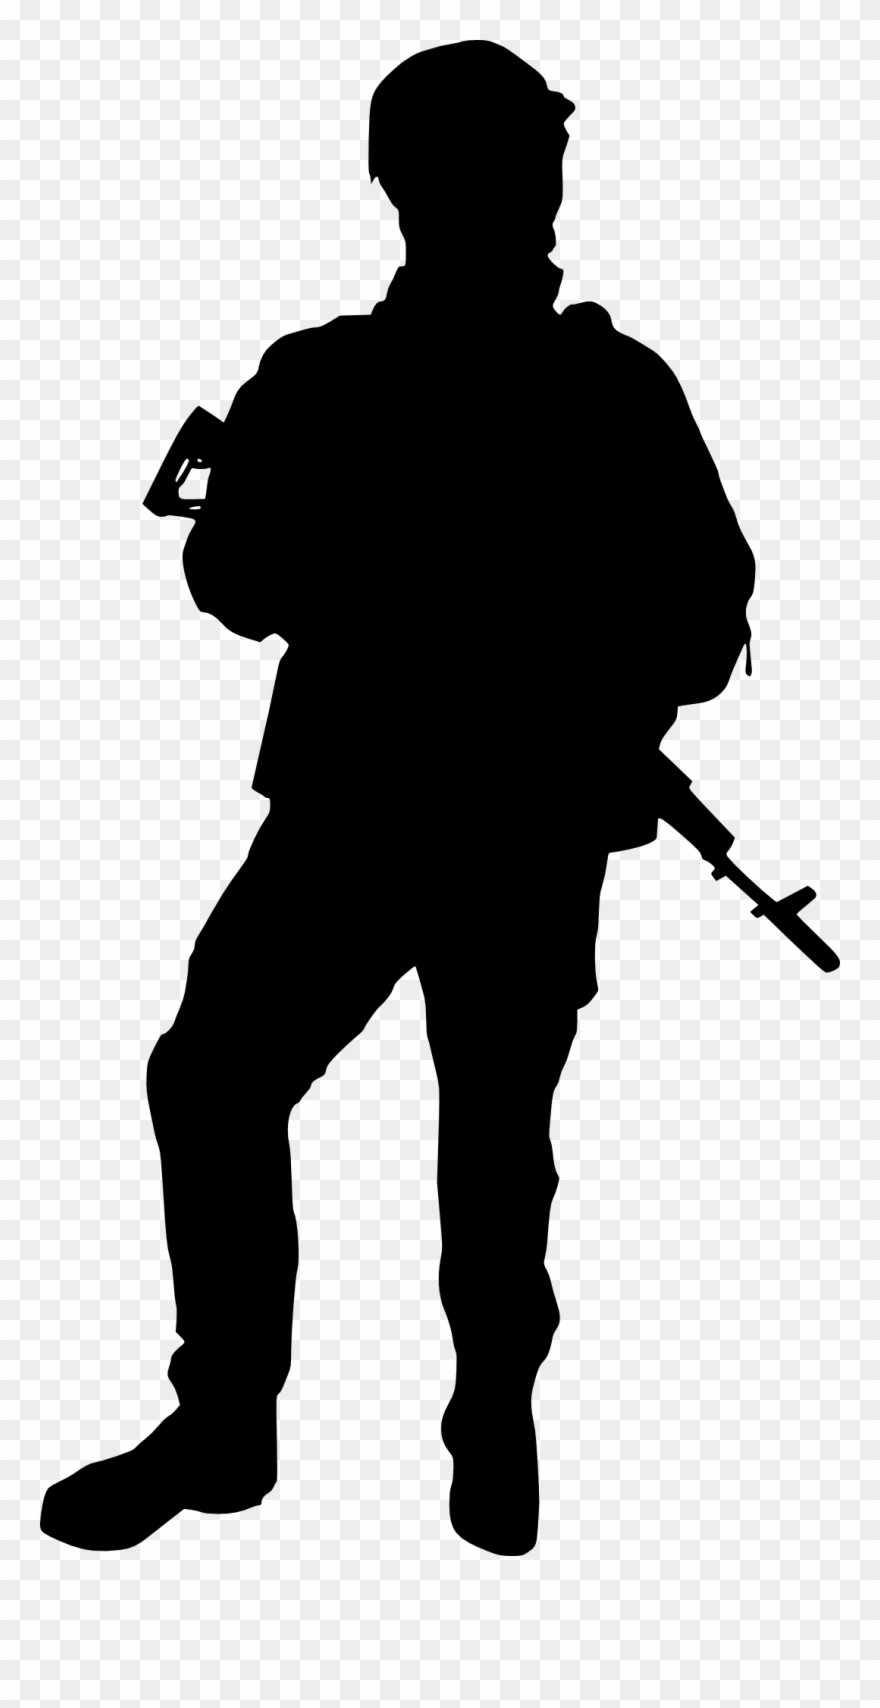 Clip art at getdrawings. Soldiers clipart transparent background